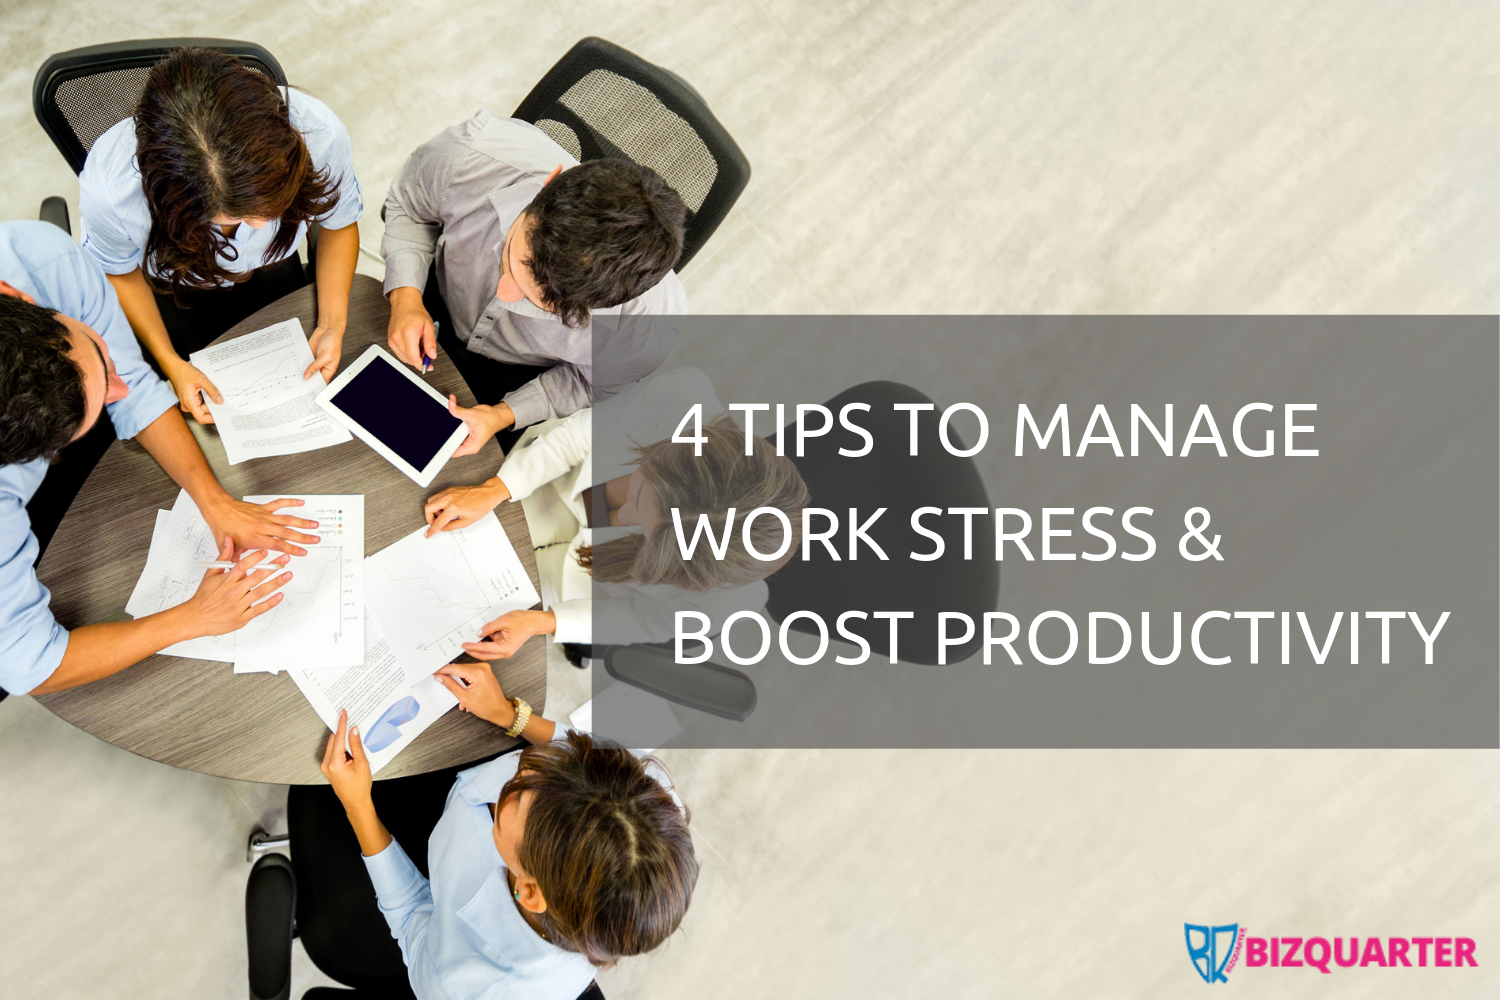 4 tips to manage work stress & boost productivity